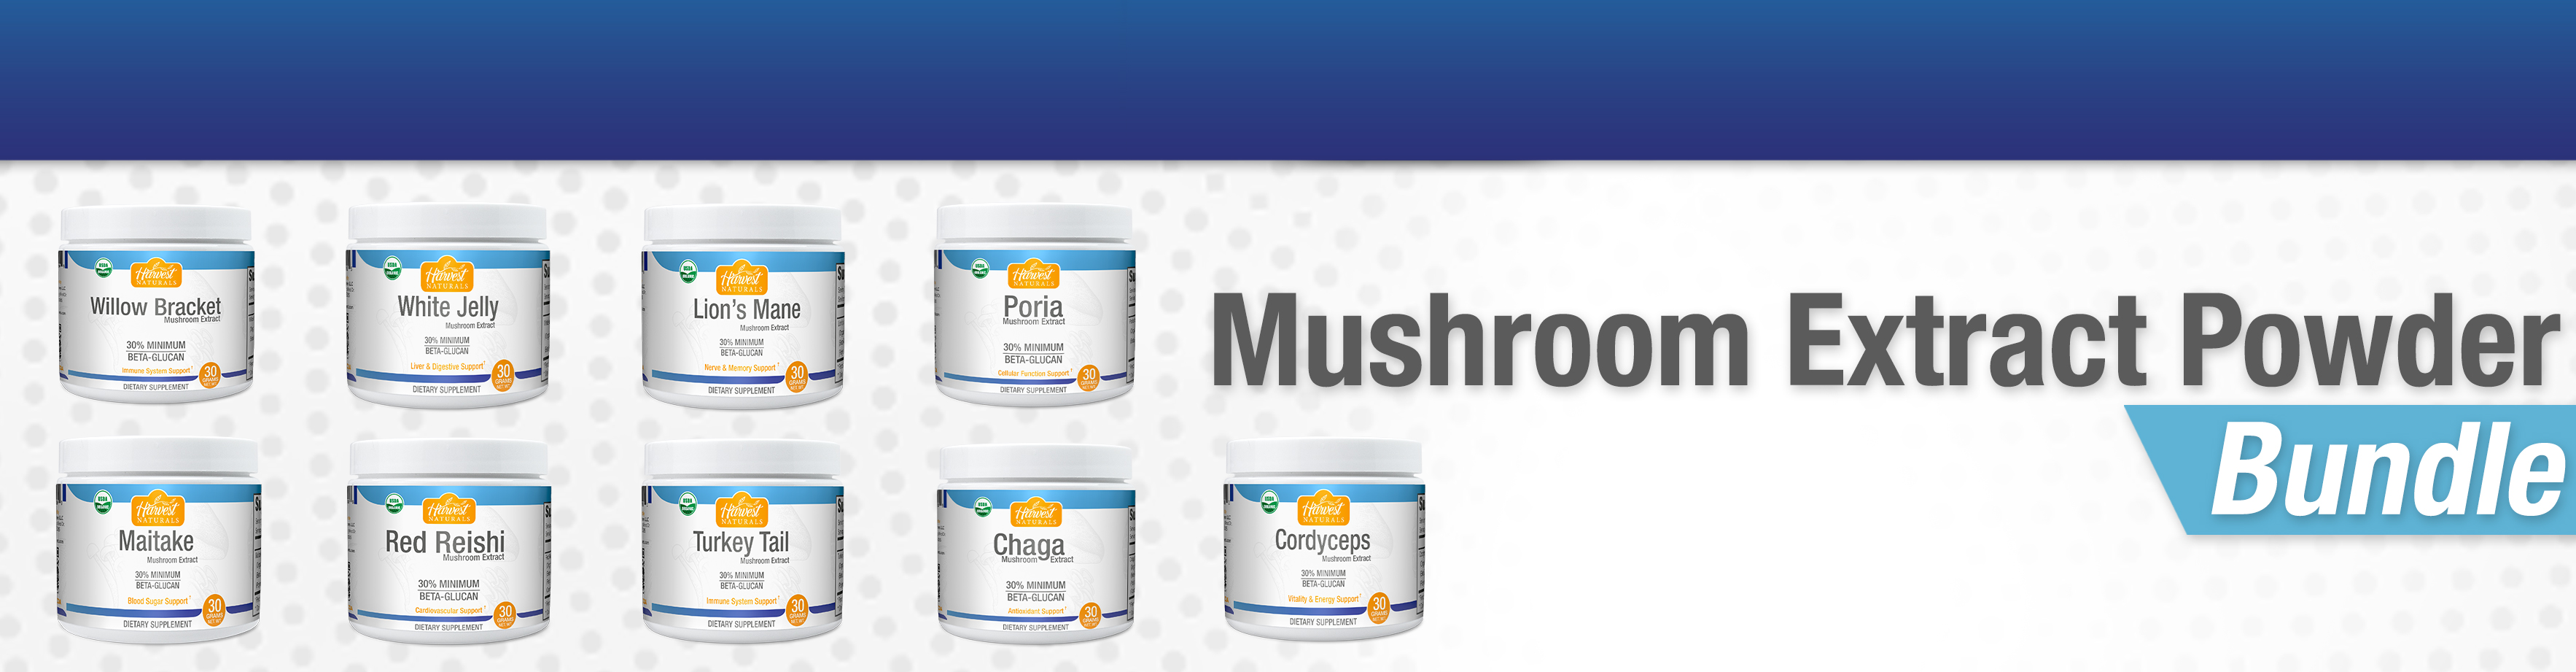 mushroom-extract-powder-bundle.jpg